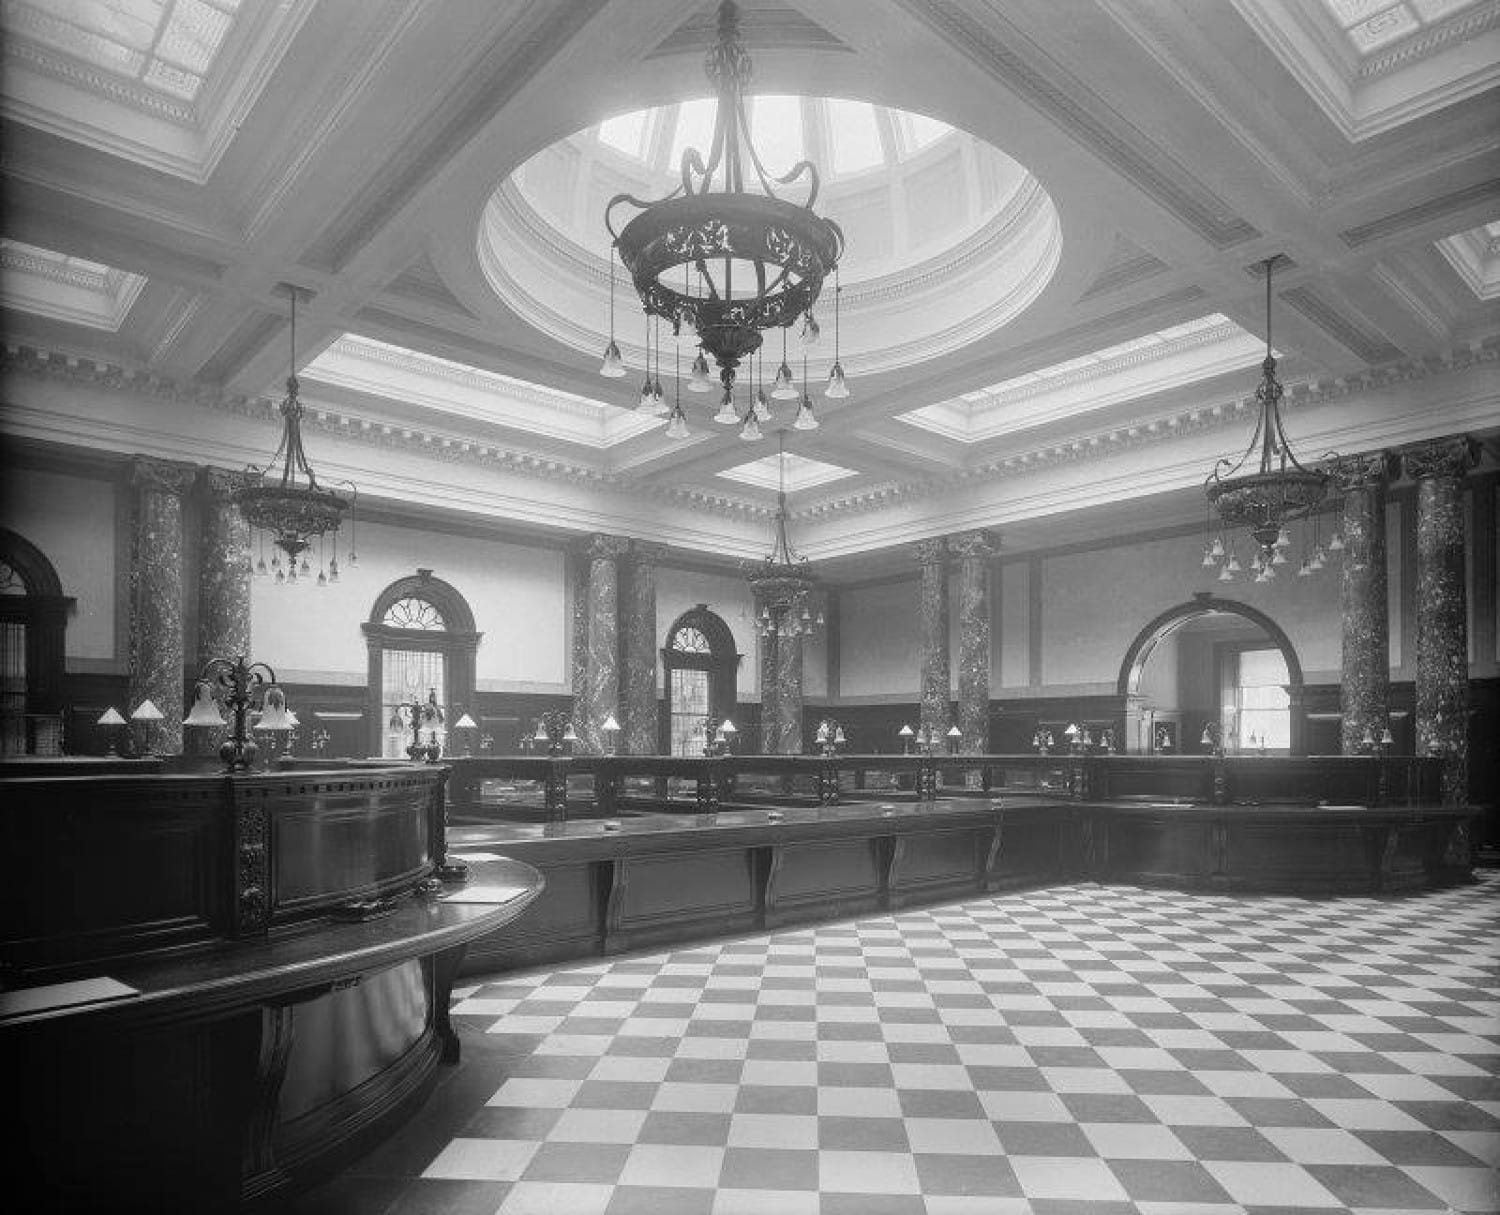 The original banking Hall. RCAHMS